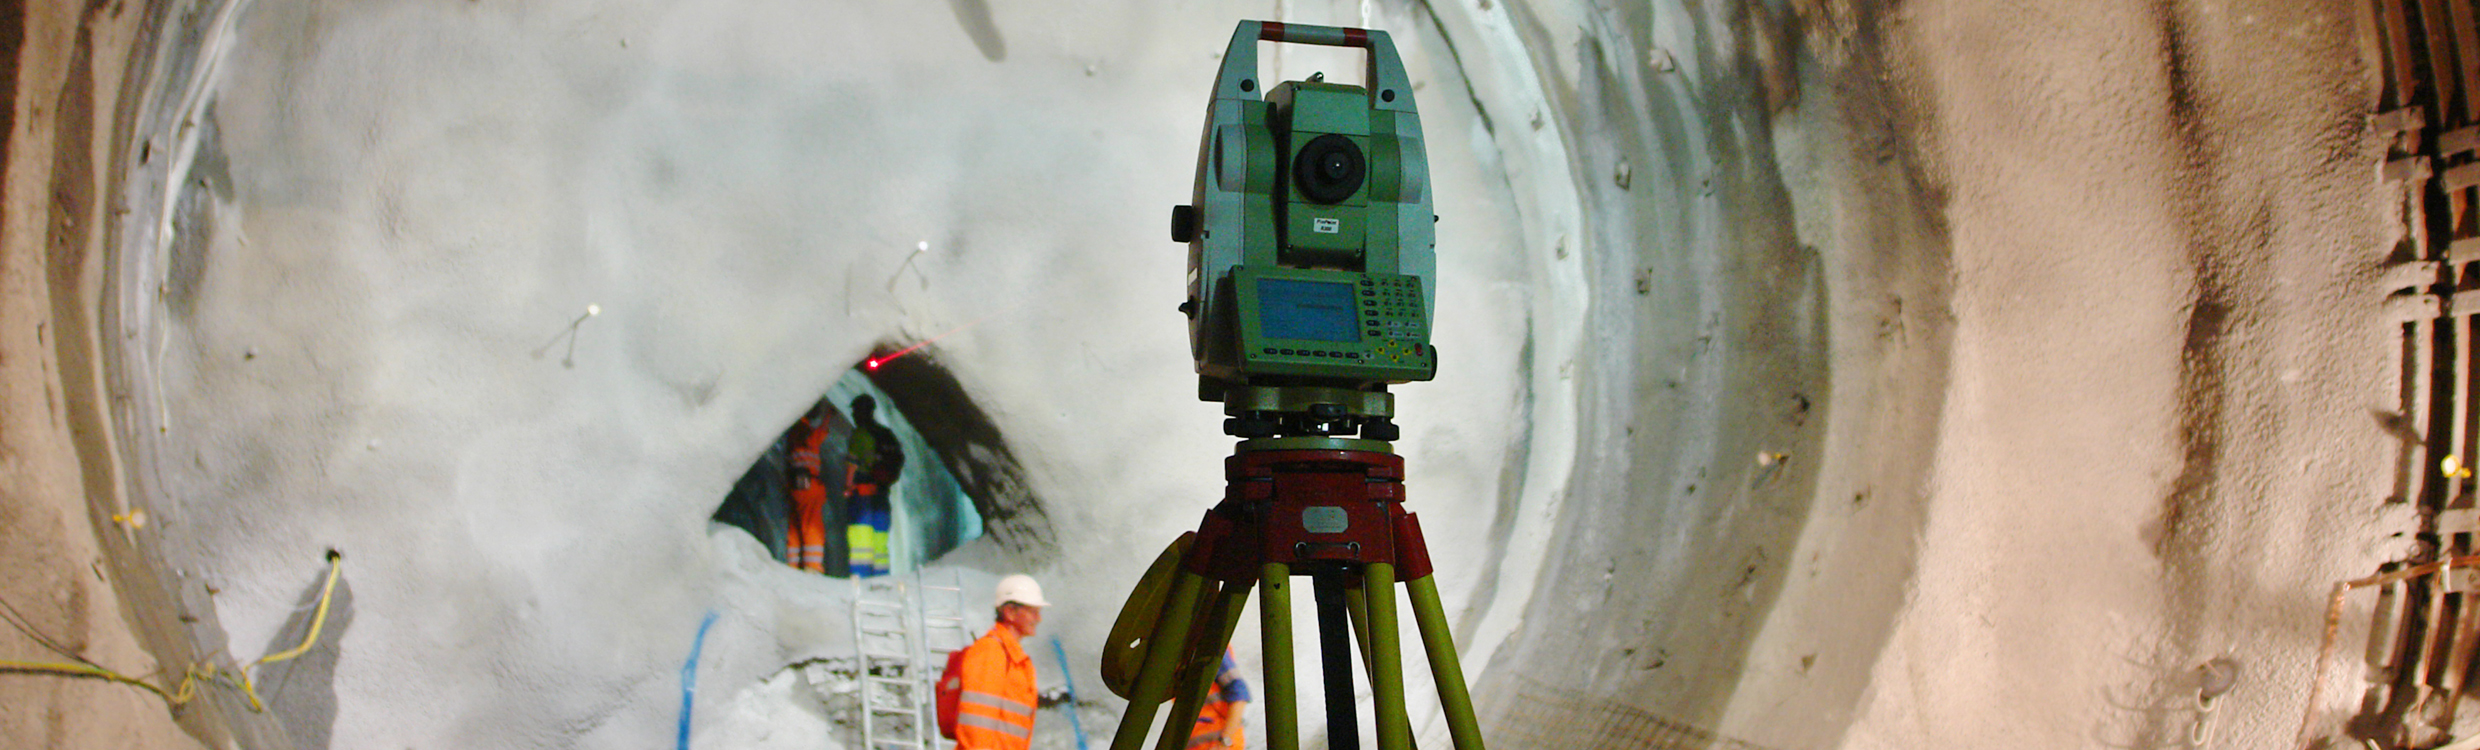 Opening the world's longest, deepest rail tunnel with precise measurement